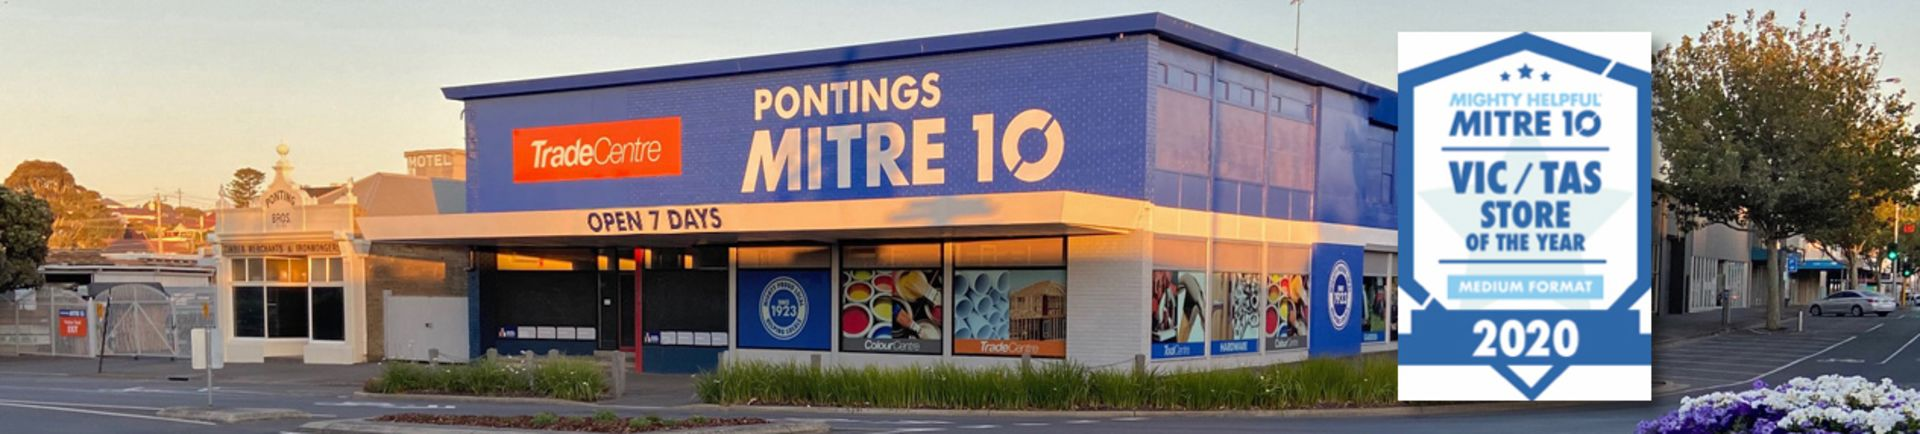 Pontings has been a part of Warrnambool's history since 1923